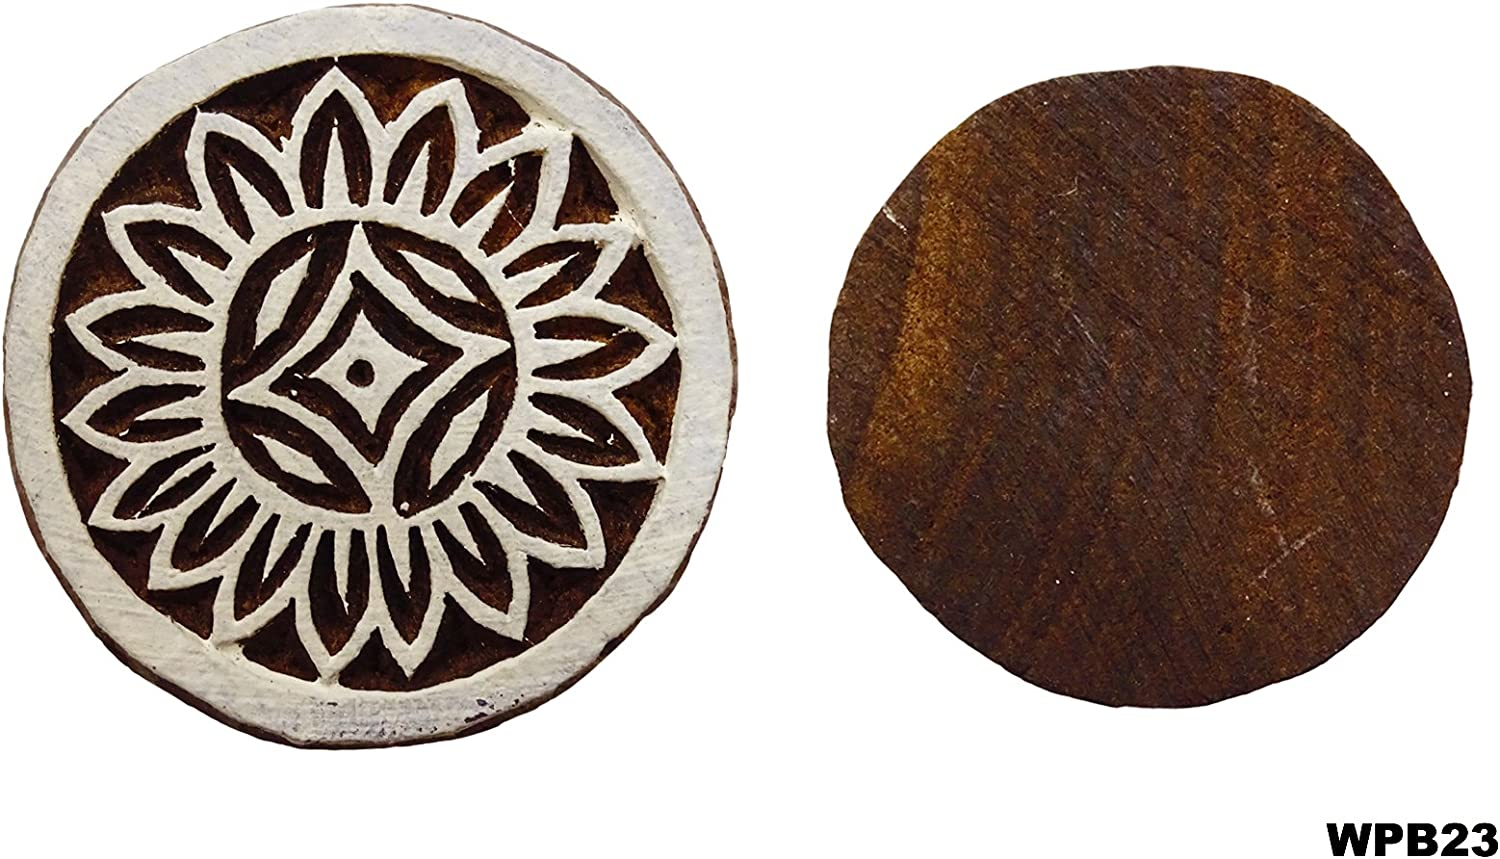 Peegli Elegant Designs Wooden Block Rangoli Art Decor Indian Textile Printing Stamps Exclusive Pattern Hand Carved DIY Scrapbook/Projects For Clay Tattoo Decorative